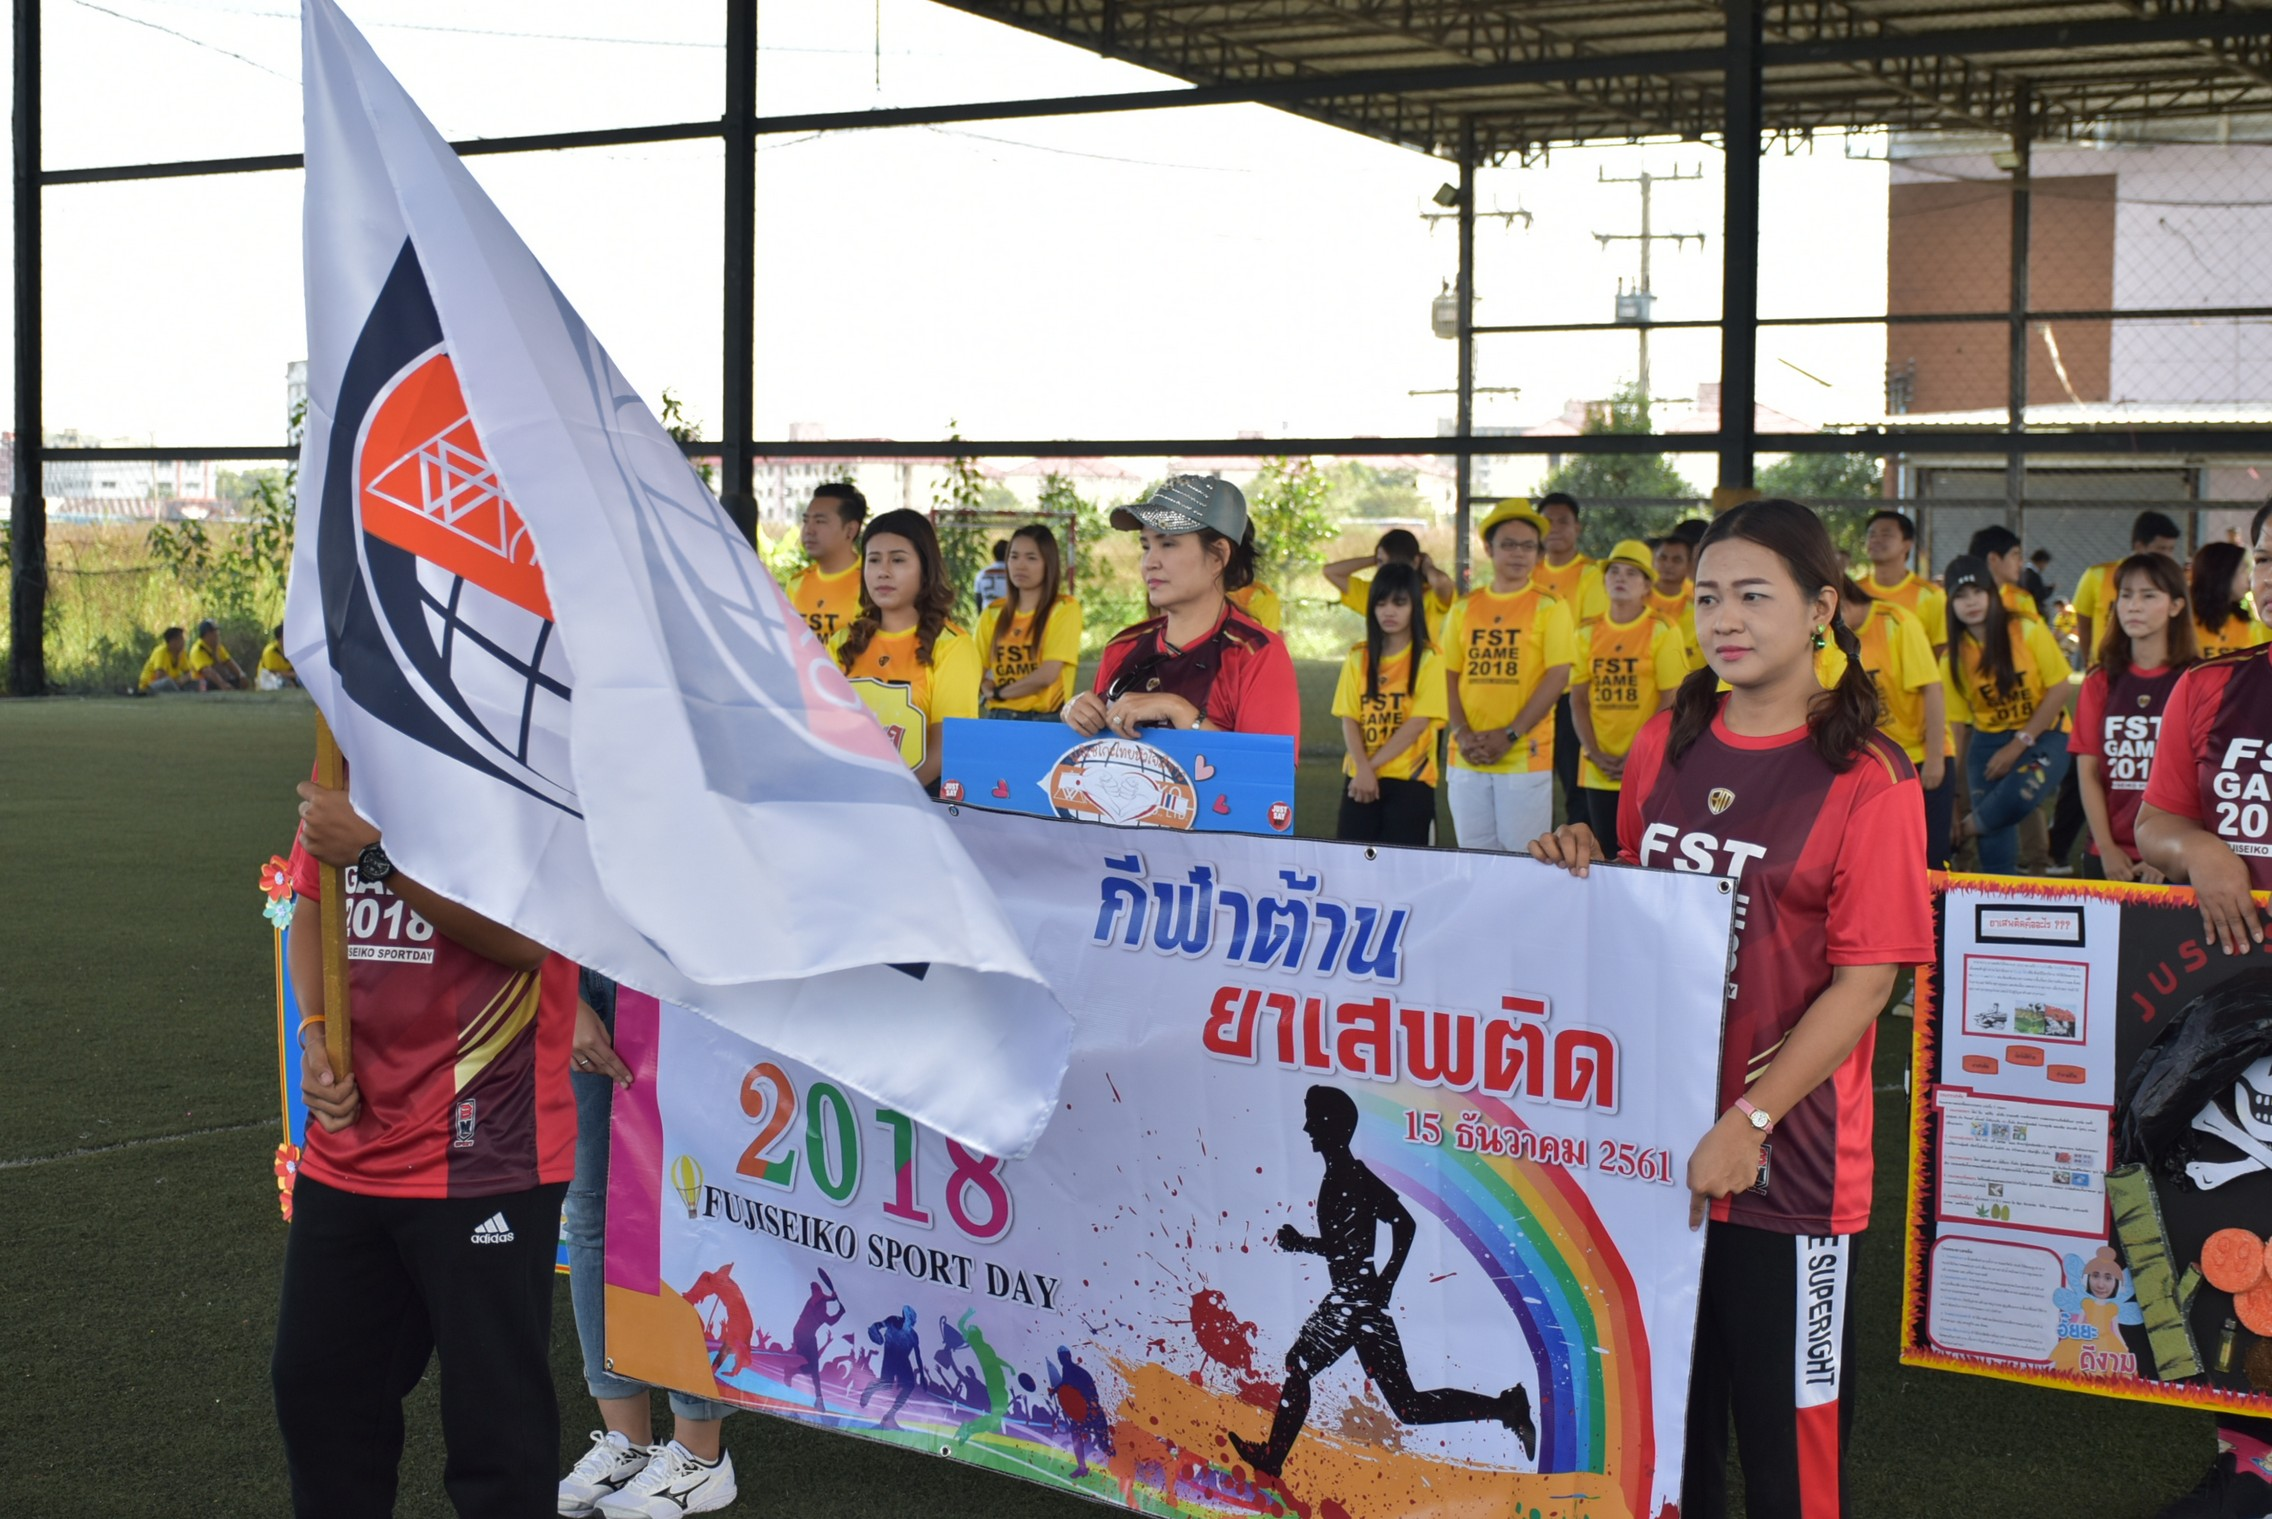 sportday2018